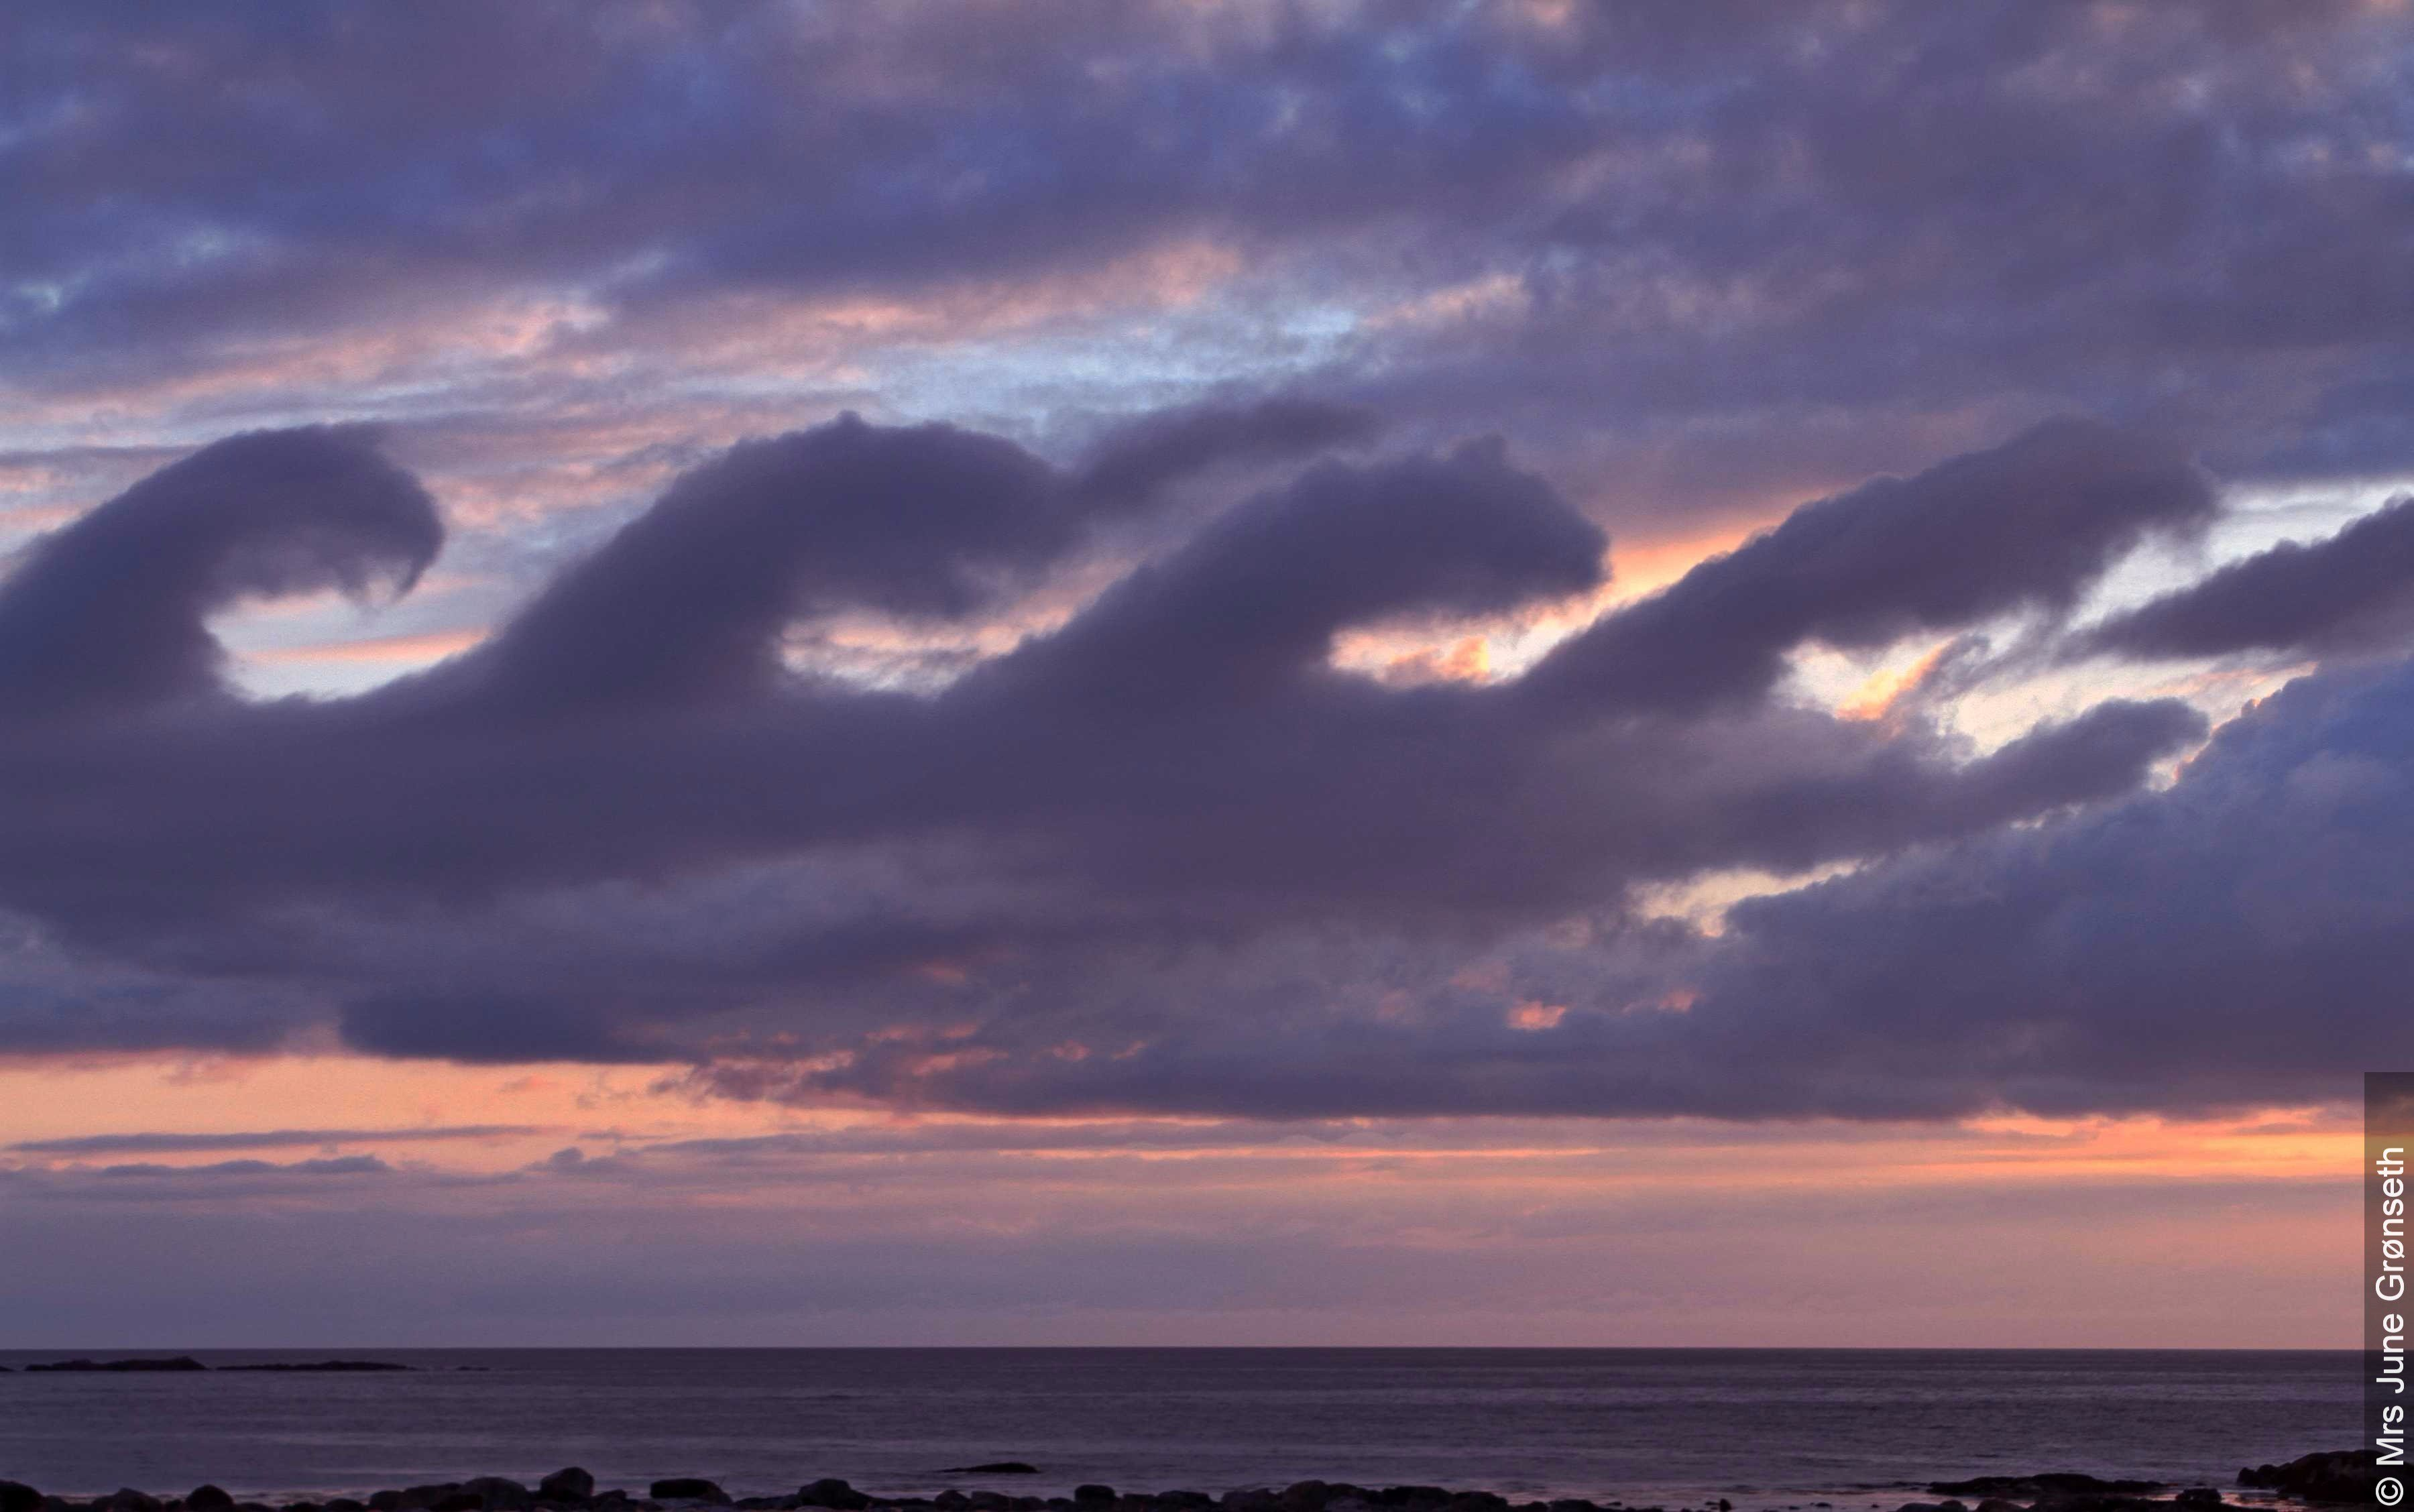 Fluctus (Kelvin-Helmholtz) clouds. Photo by Mrs. June Gronseth, provided through WMO.